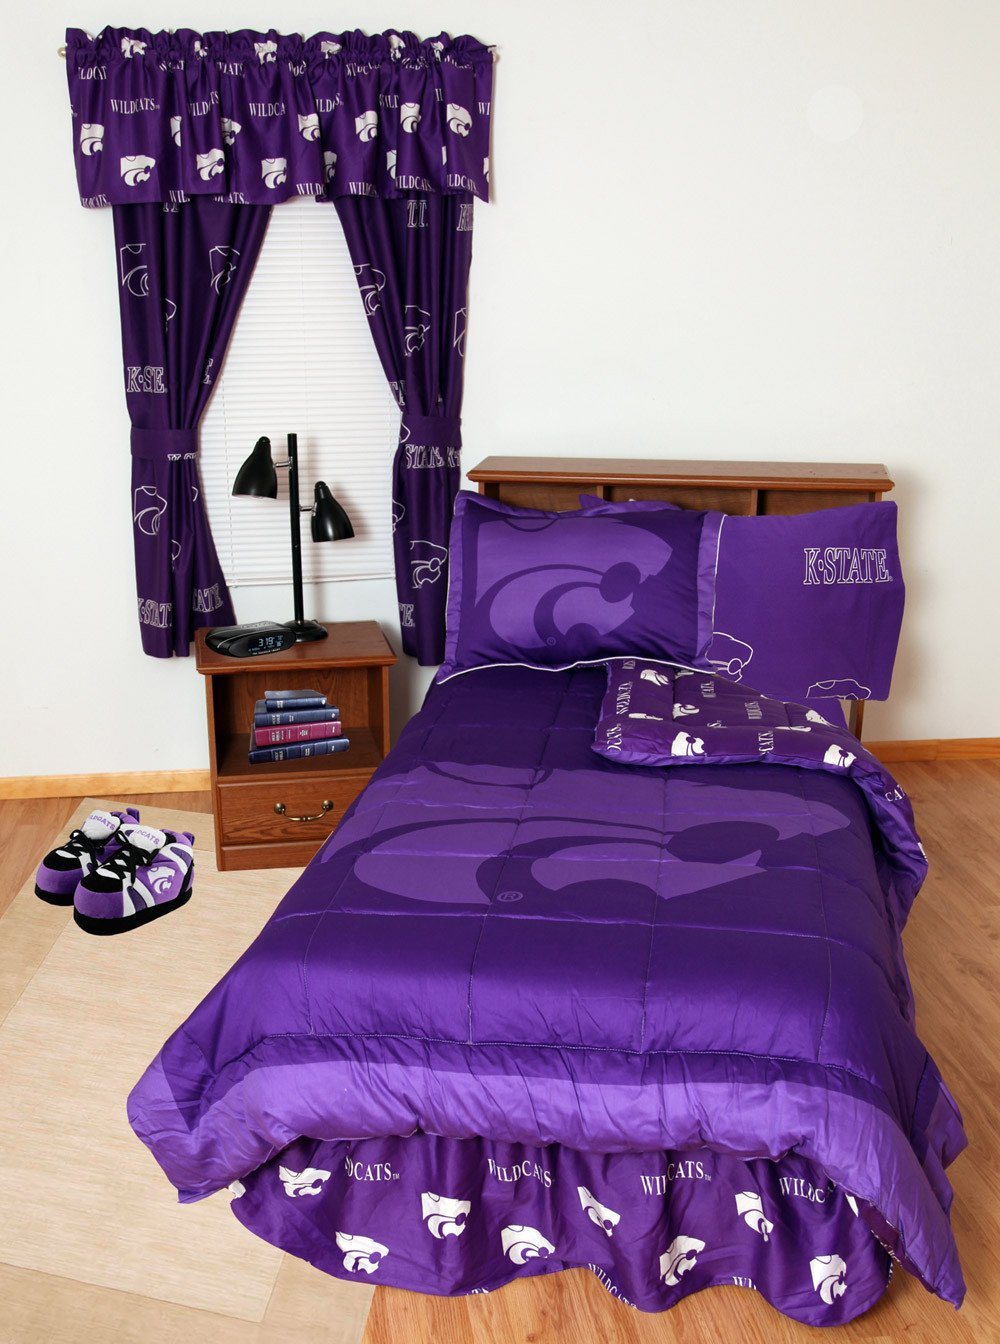 Kansas State Bed in a Bag Full - With Team Colored Sheets - KSUBBFL by College Covers from College Covers